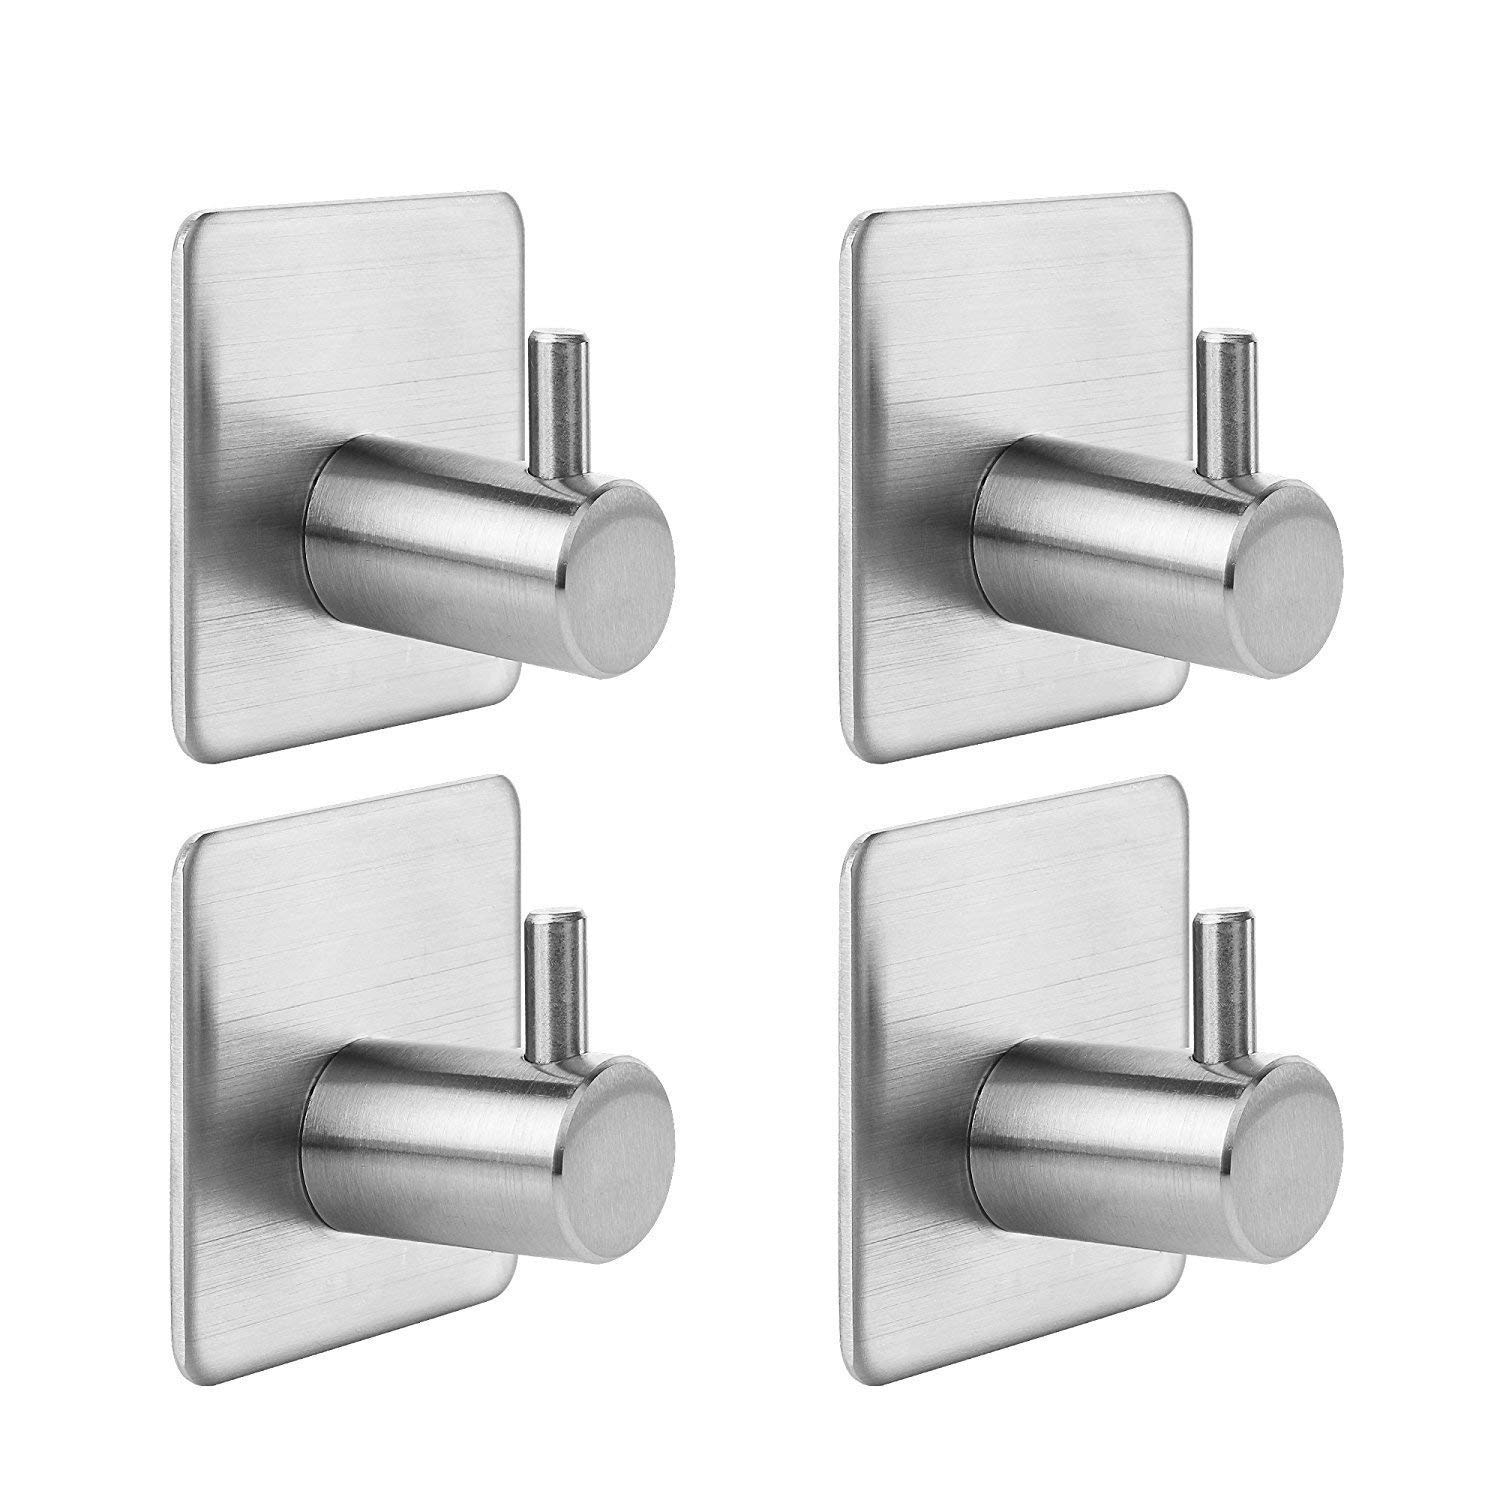 Geekercity 4 Pack Towel Hooks, SUS304 Stainless Steel Self Adhesive Coat Towel Robe Hat Clothes Single Hook for Bedroom Bathroom Kitchen Toilet Cabinet Hotel Heavy Duty Modern Wall Mounted Brushed